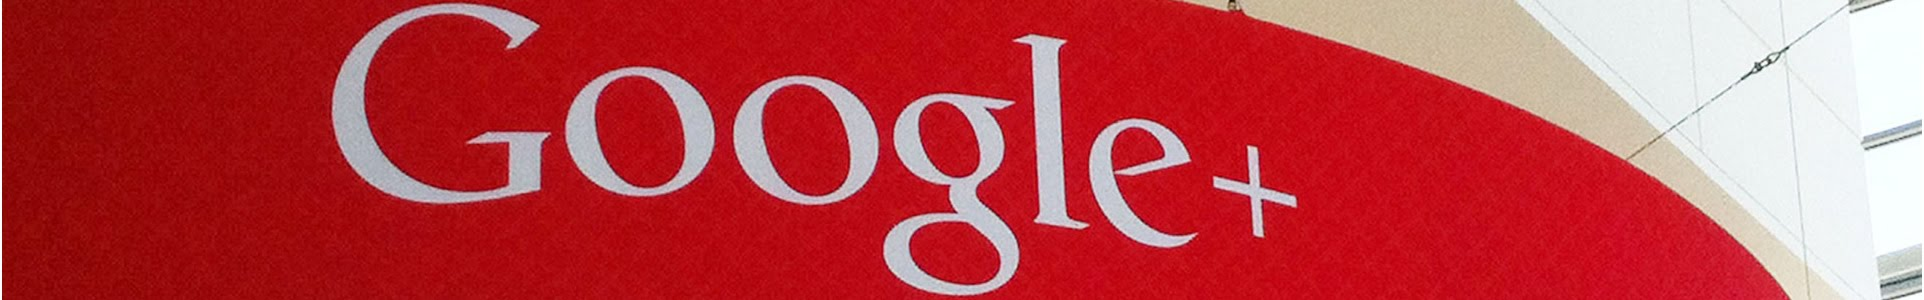 Need Help On Google Plus?